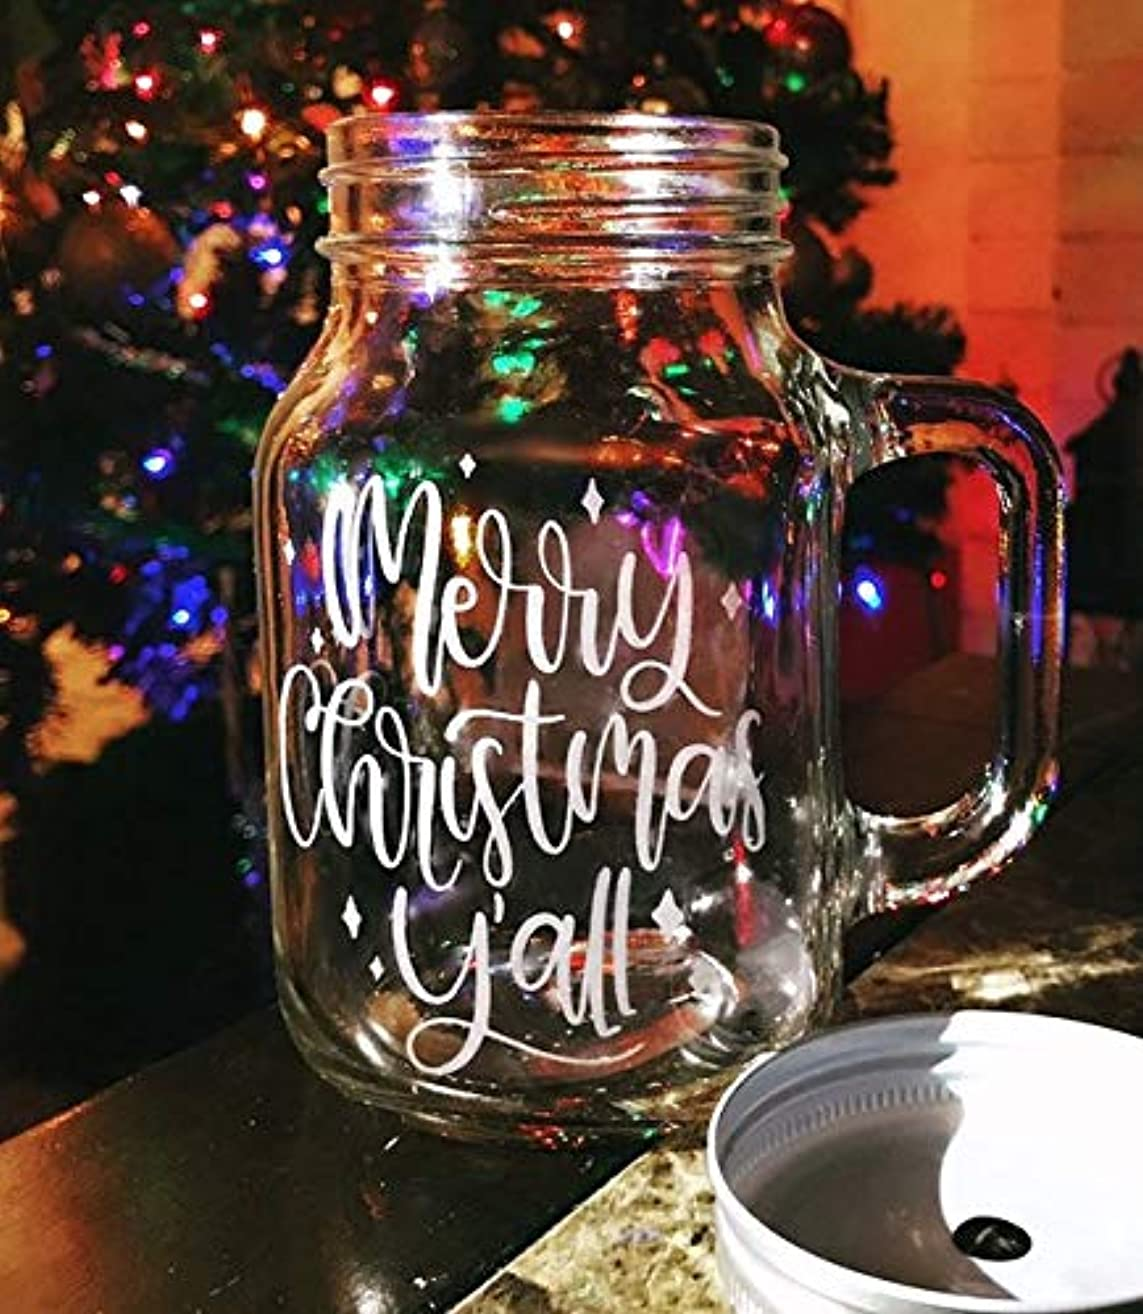 Merry Christmas Y'all - Country Western Christmas Mason Jar Mug with Lid and Hole for Straw, Farmhouse Christmas, Country Christmas Gift